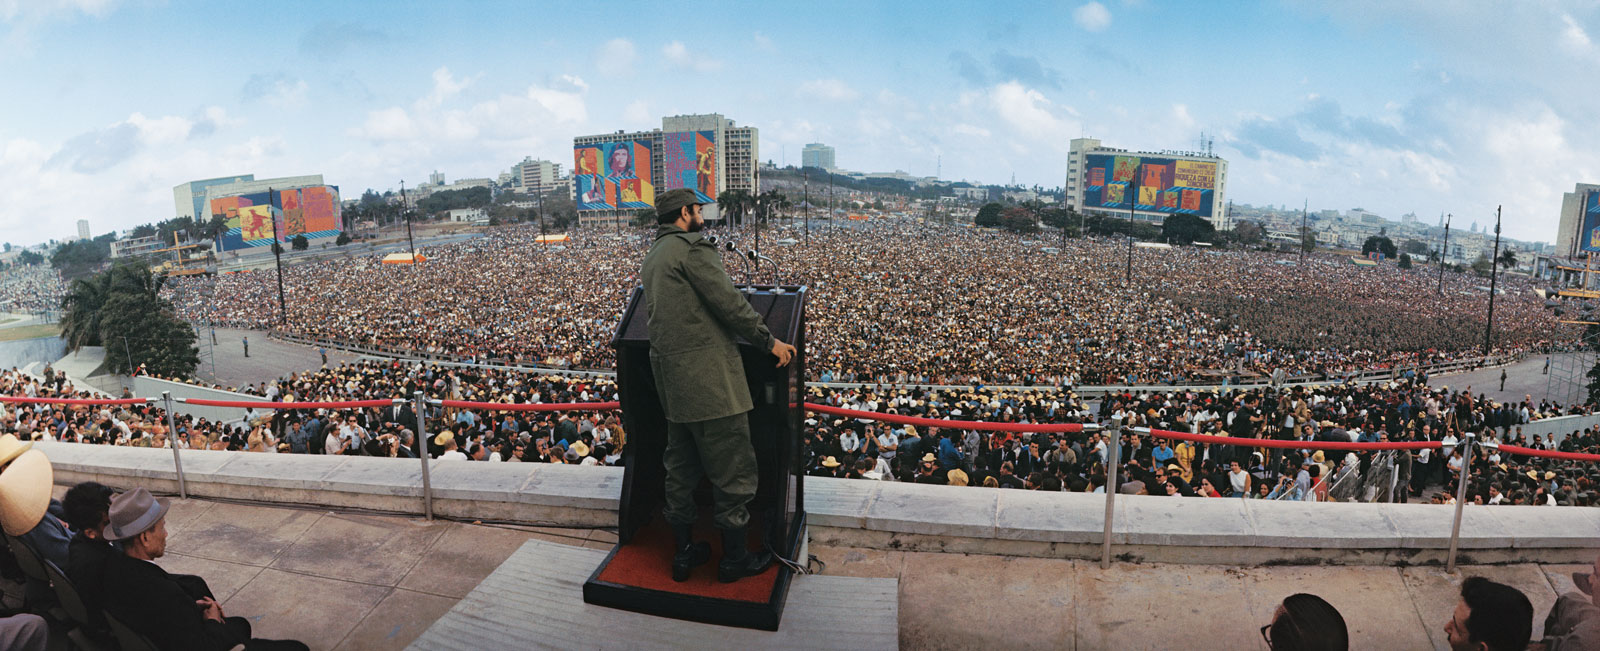 """Fidel Castro during """"The Year of the Heroic Guerrilla,"""" dedicated to the memory of Che Guevara, Revolution Square, Havana, 1967"""